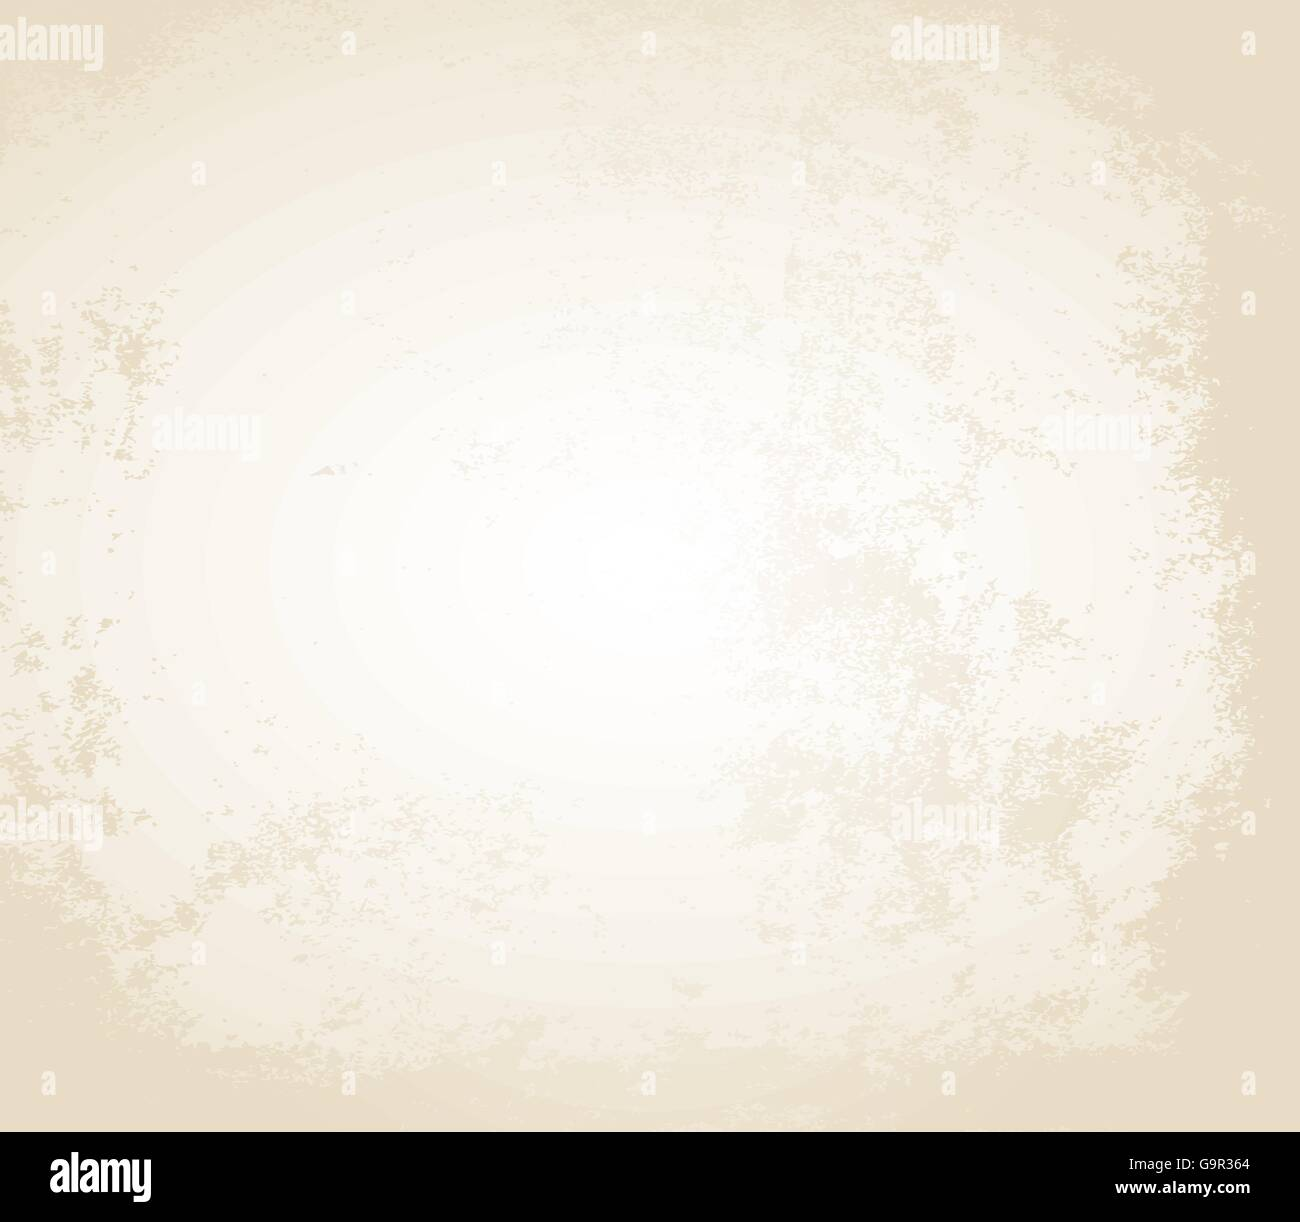 This image is a vector file representing a Vintage Old Paper Texture Vector Background. - Stock Image